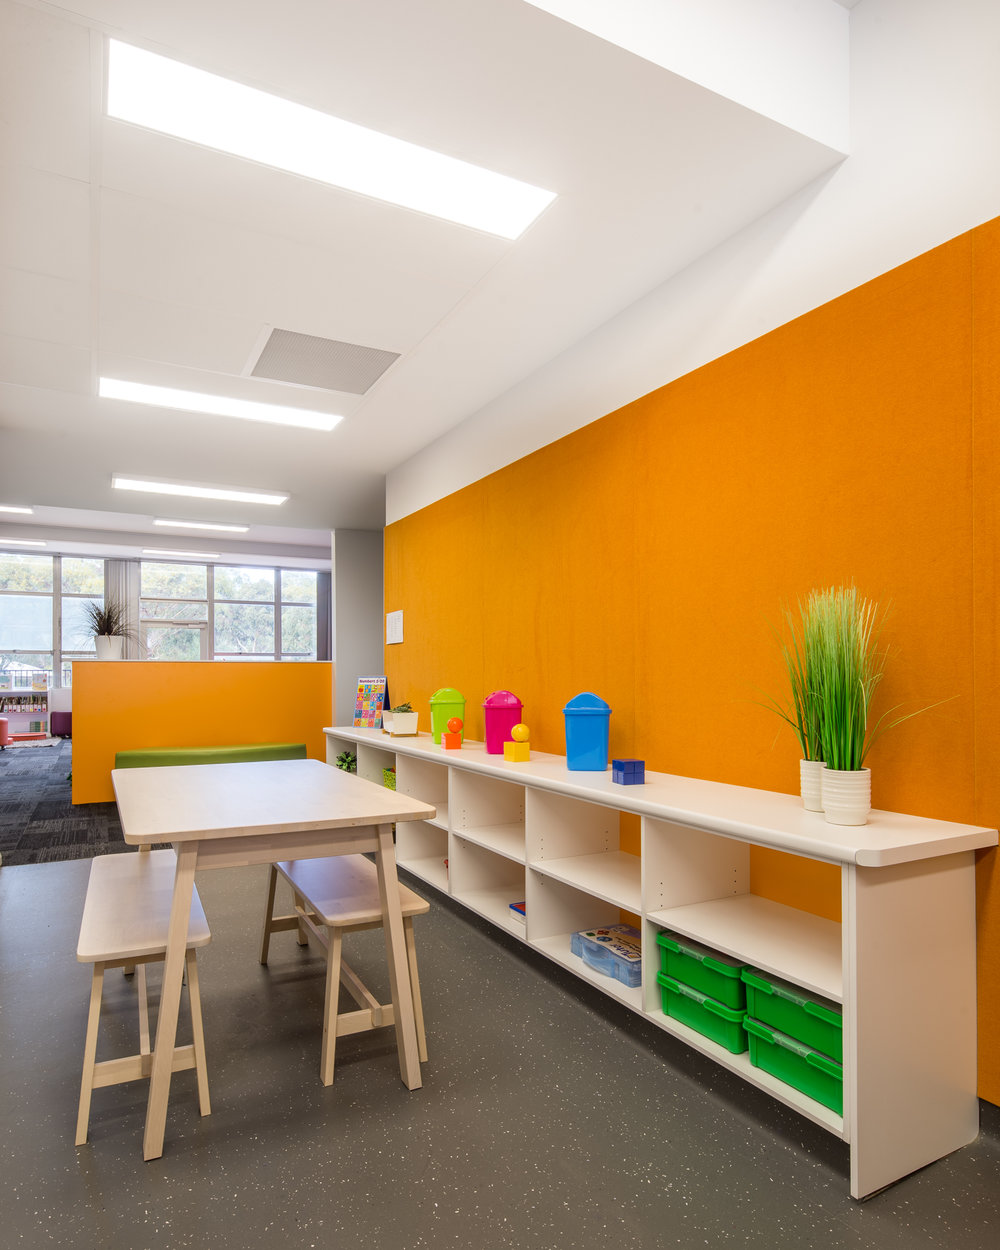 o'sullivan beach primary school - stem